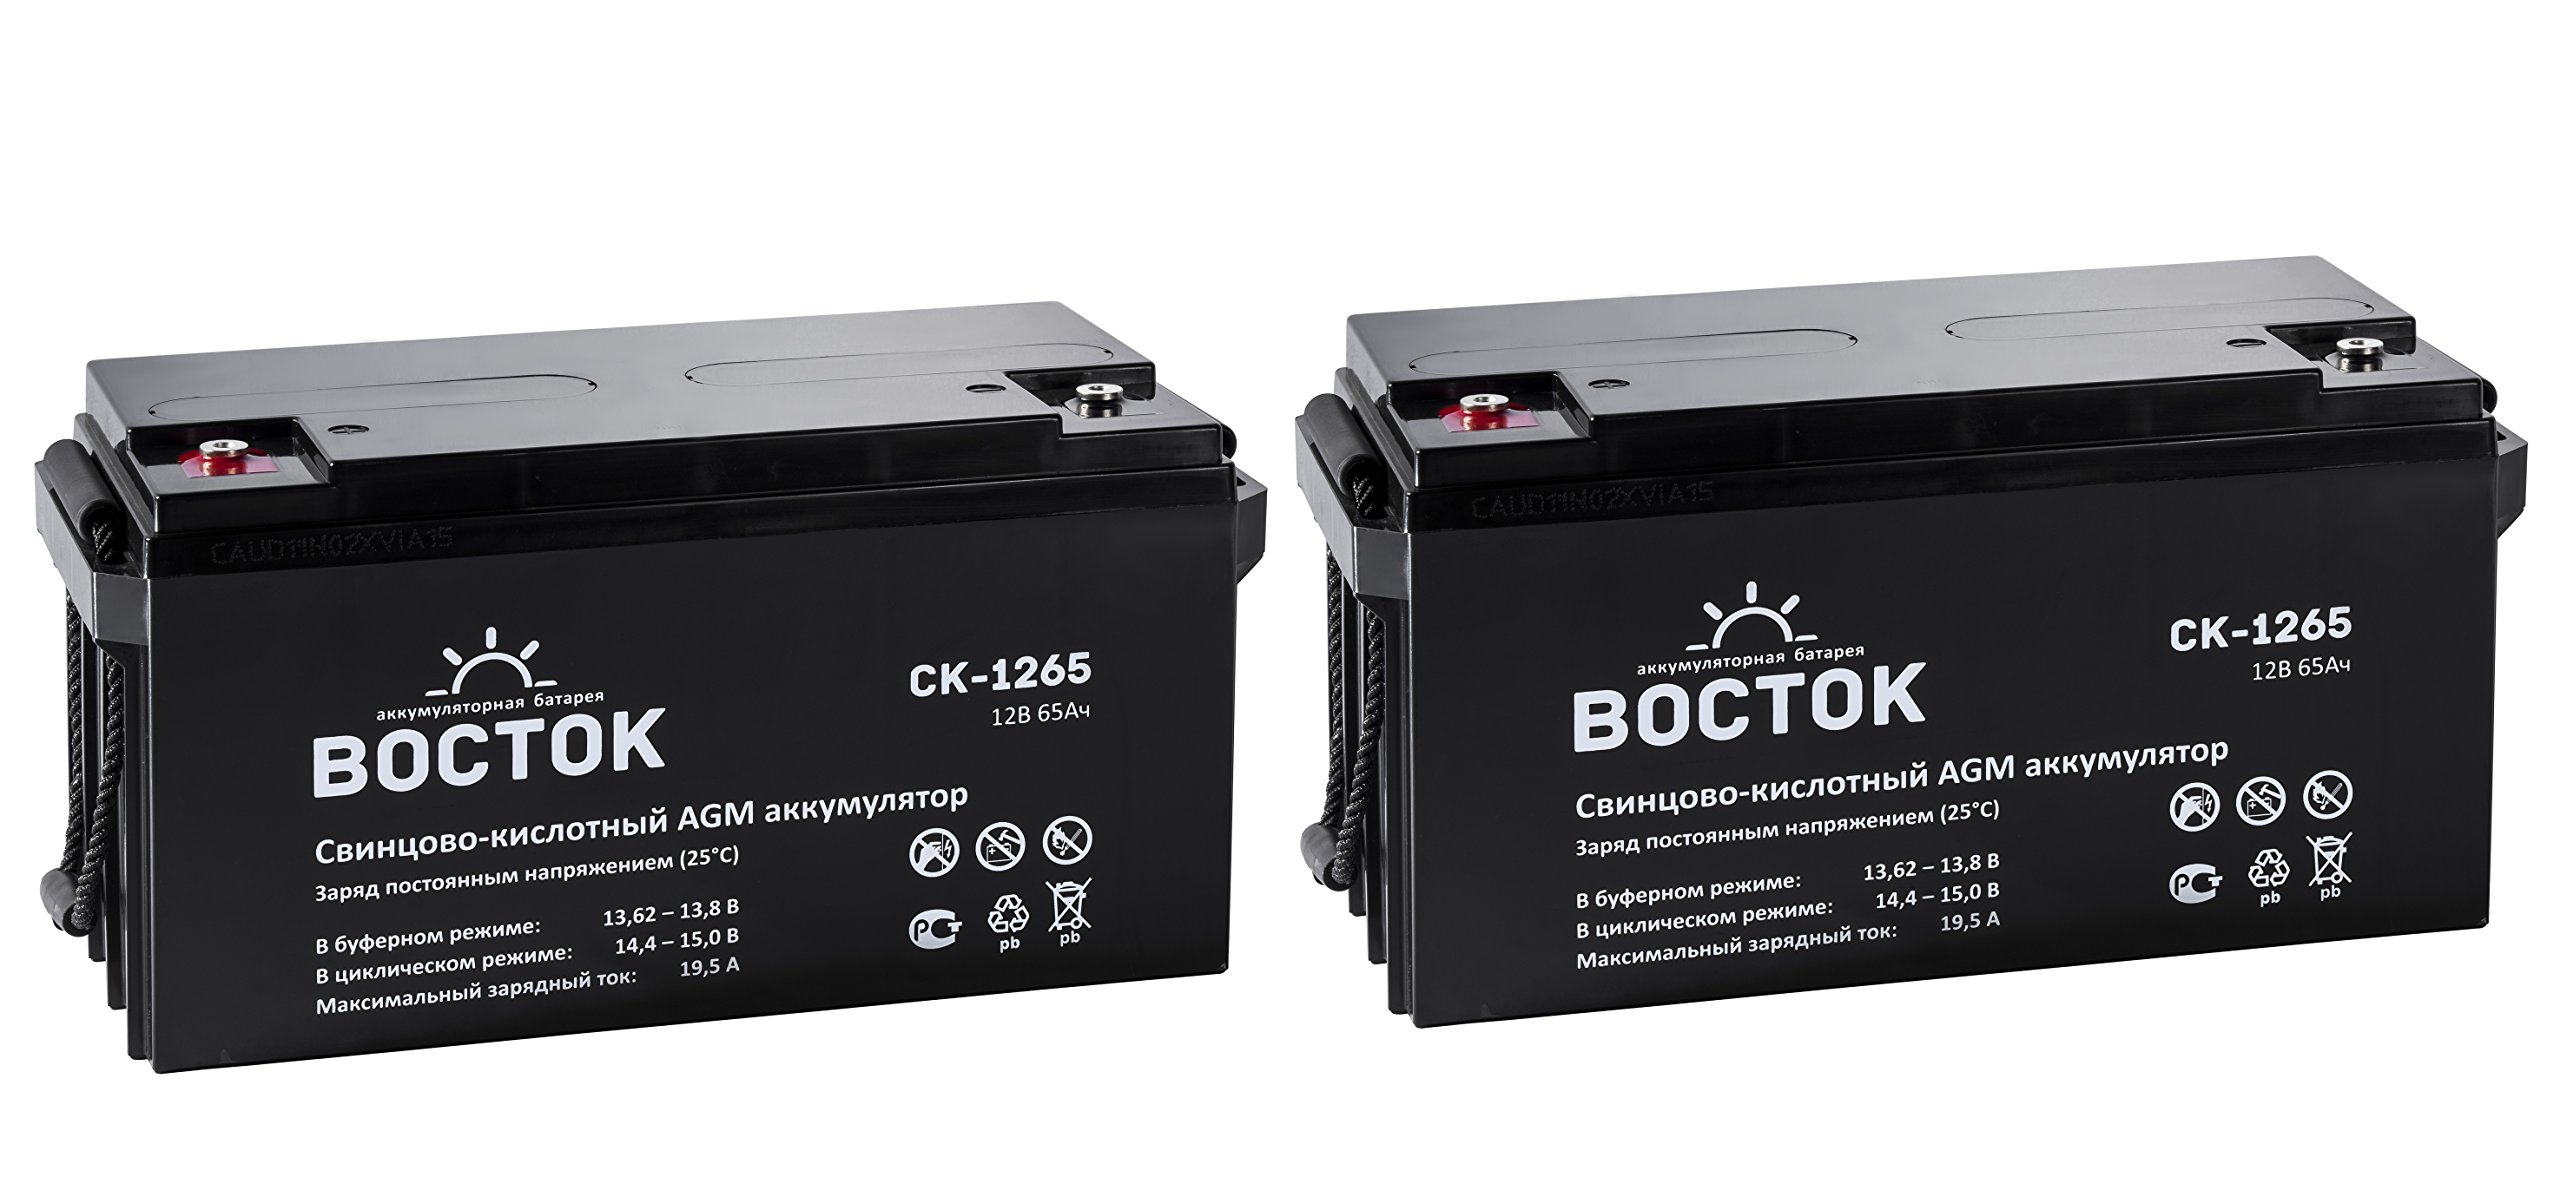 Bockok 12V 65 Amp NP12 65Ah Rechargeable Lead Acid Battery With Button Style Terminals Pack Of 2